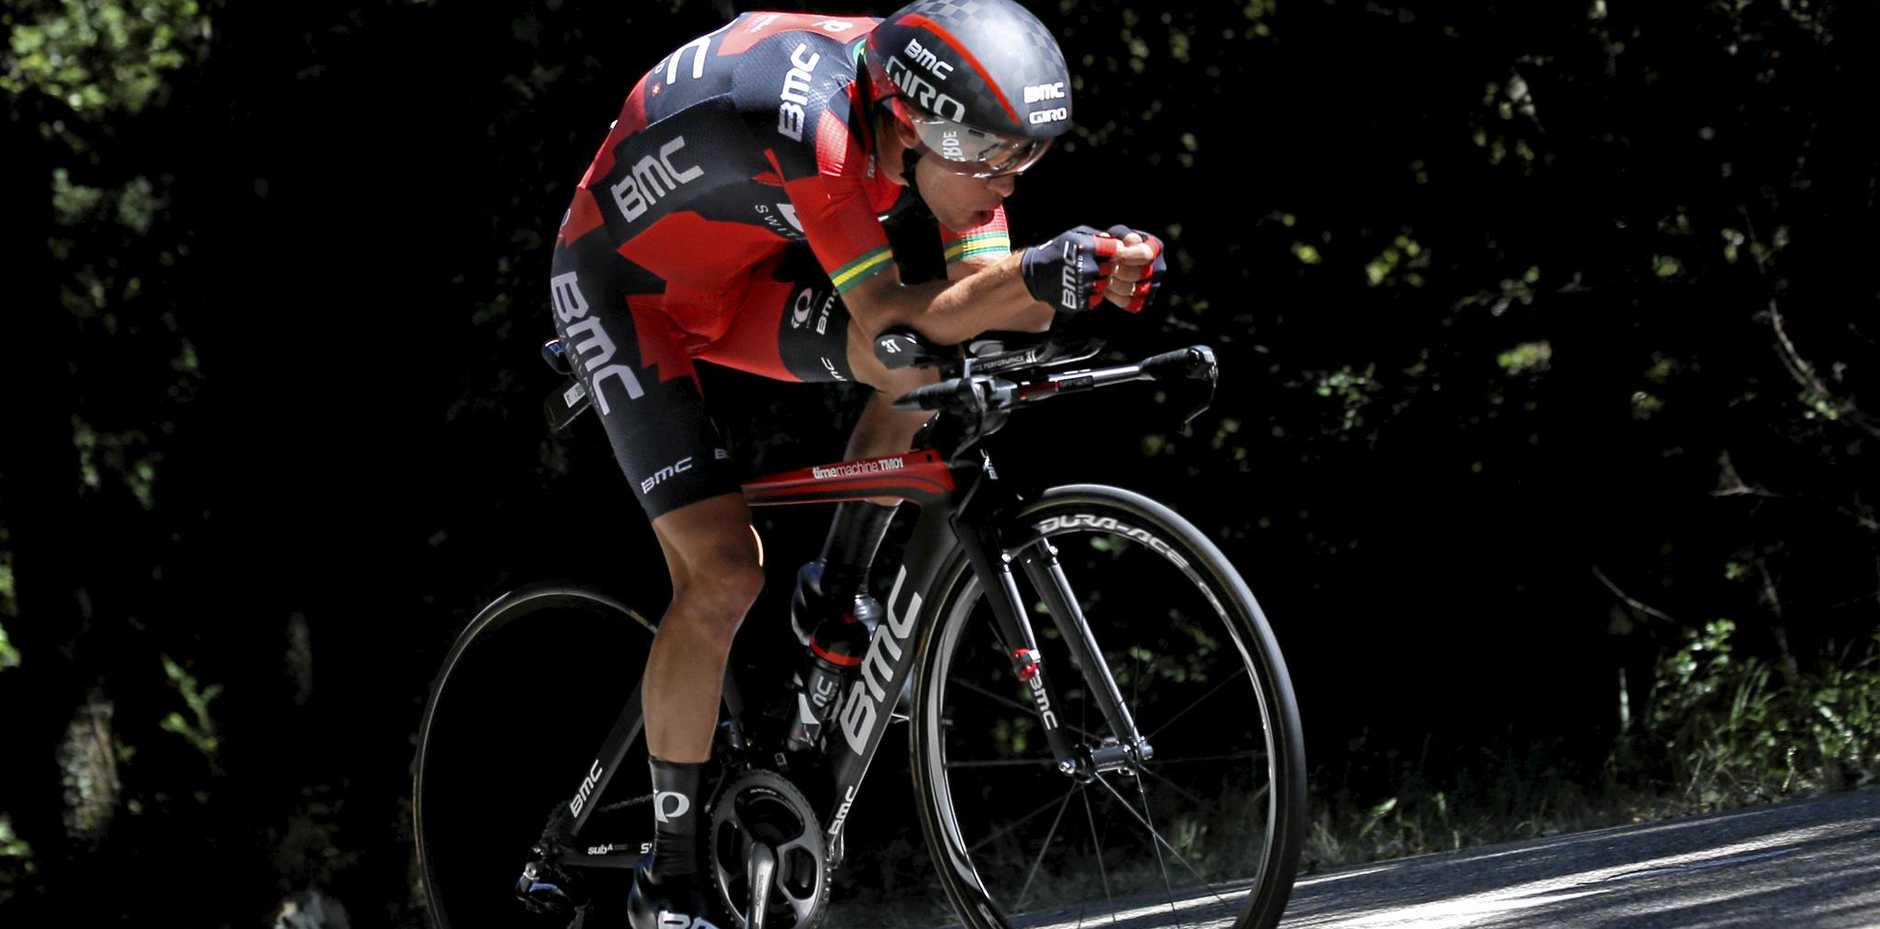 THE ONE TO BEAT: Australia's Richie Porte will be the favourite for this year's Tour Down Under.